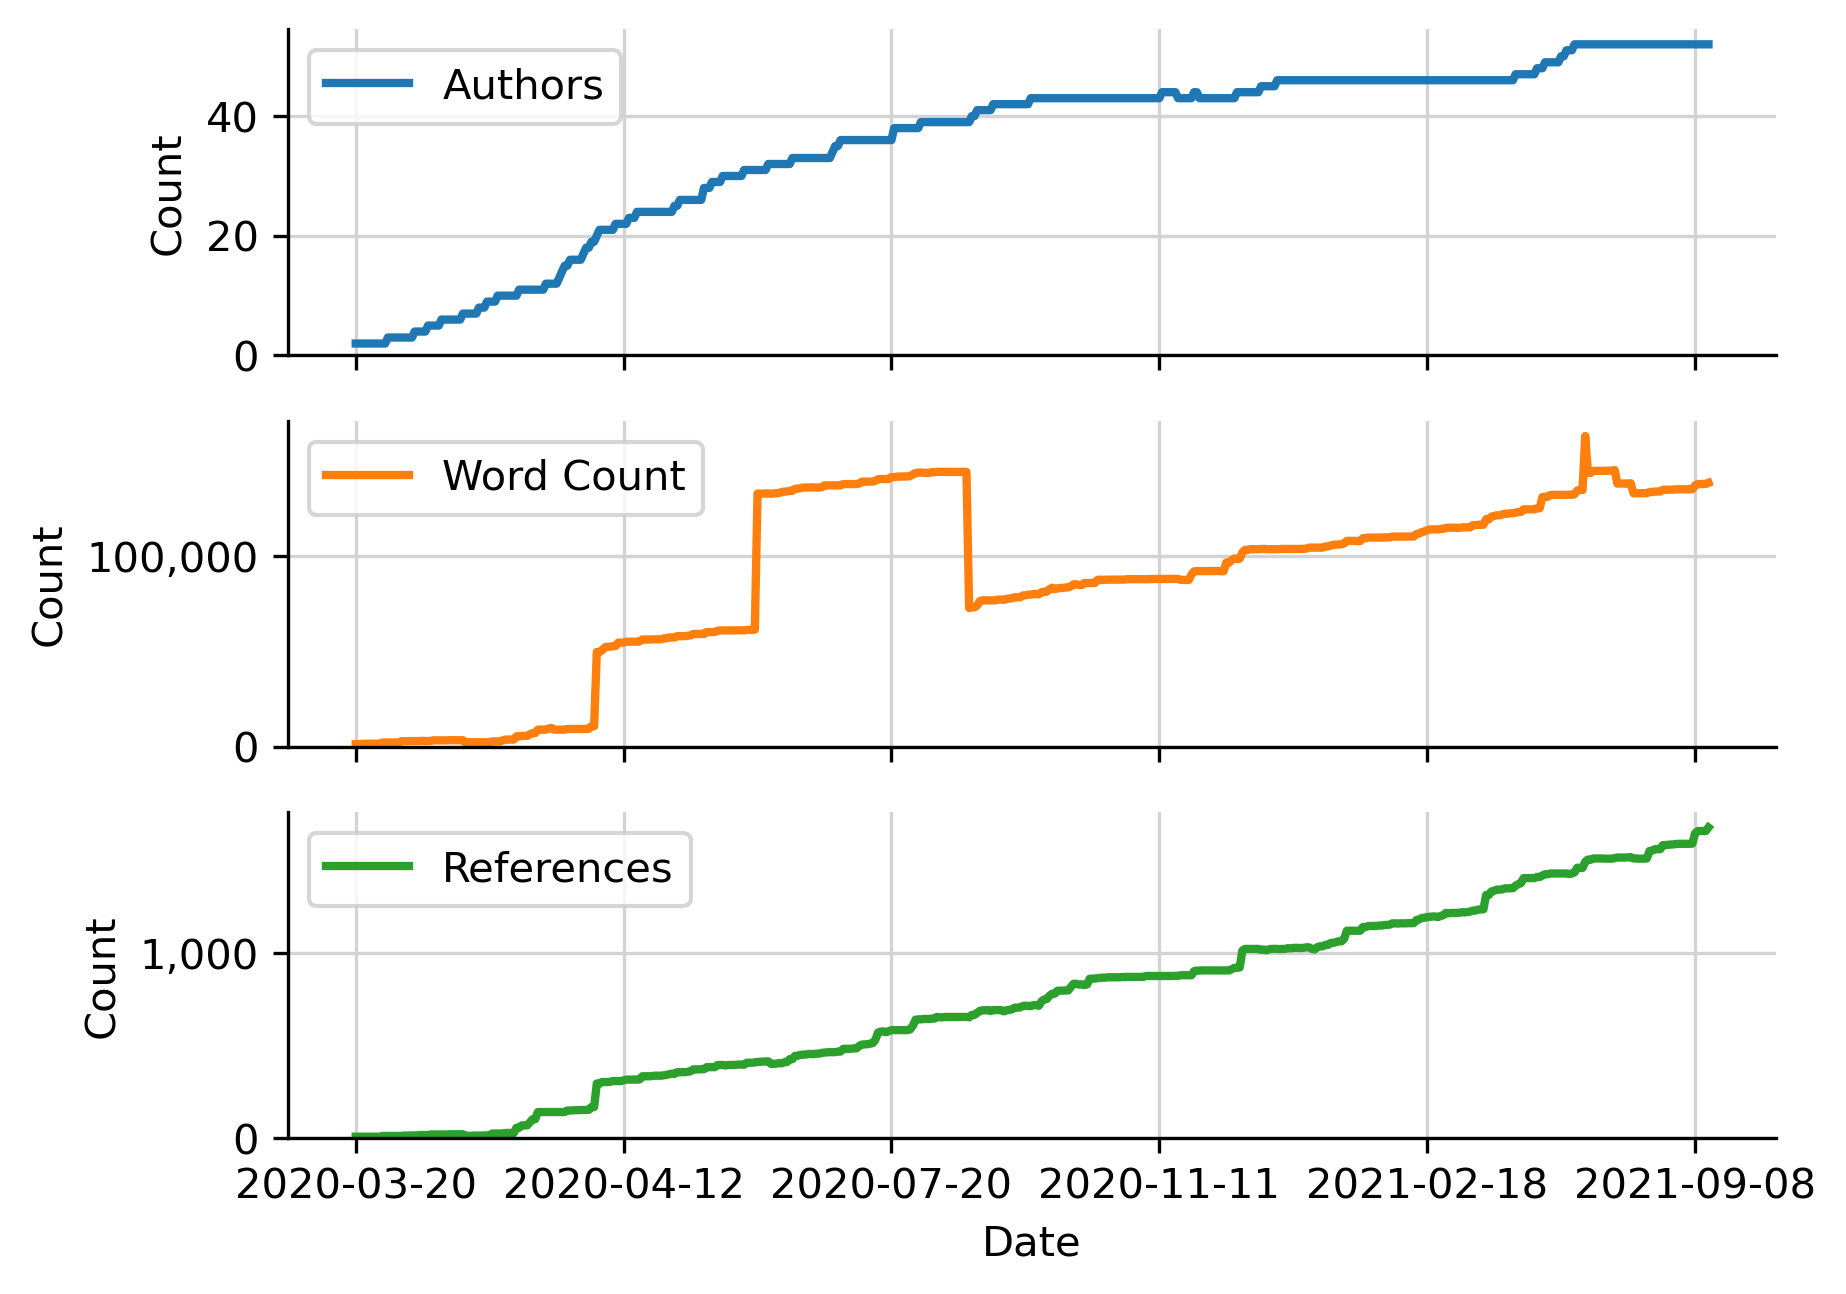 Figure10: Project growth over time. The number of authors, word count, and number of references have all grown dramatically from when the project began on March 20, 2020. As of September 10, 2021, there were 52 authors (including consortia), 1676 references, and 138213 words. The spike in word count during summer 2020 was caused by erroneous duplication and subsequent removal of a large appendix.